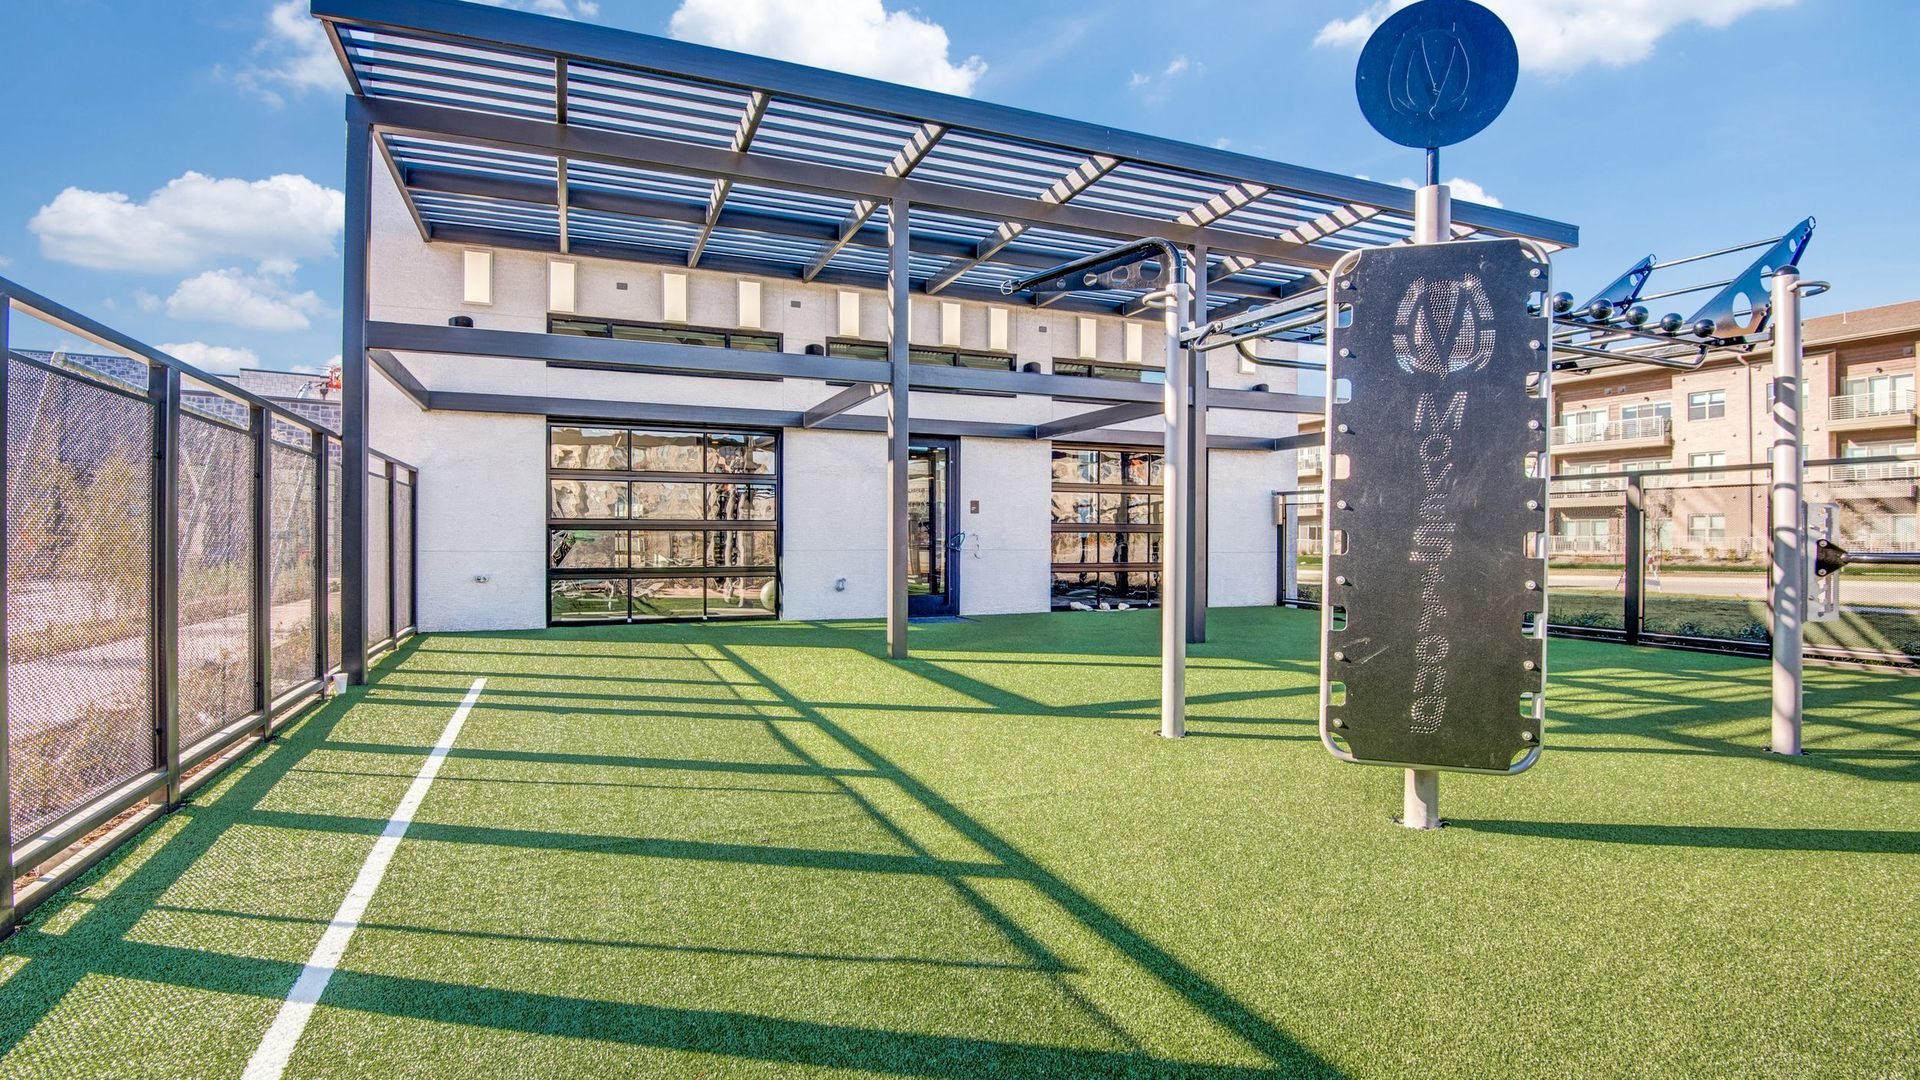 Outdoor Crossfit area with turf ground, a view into the fitness center, and a cabana roof